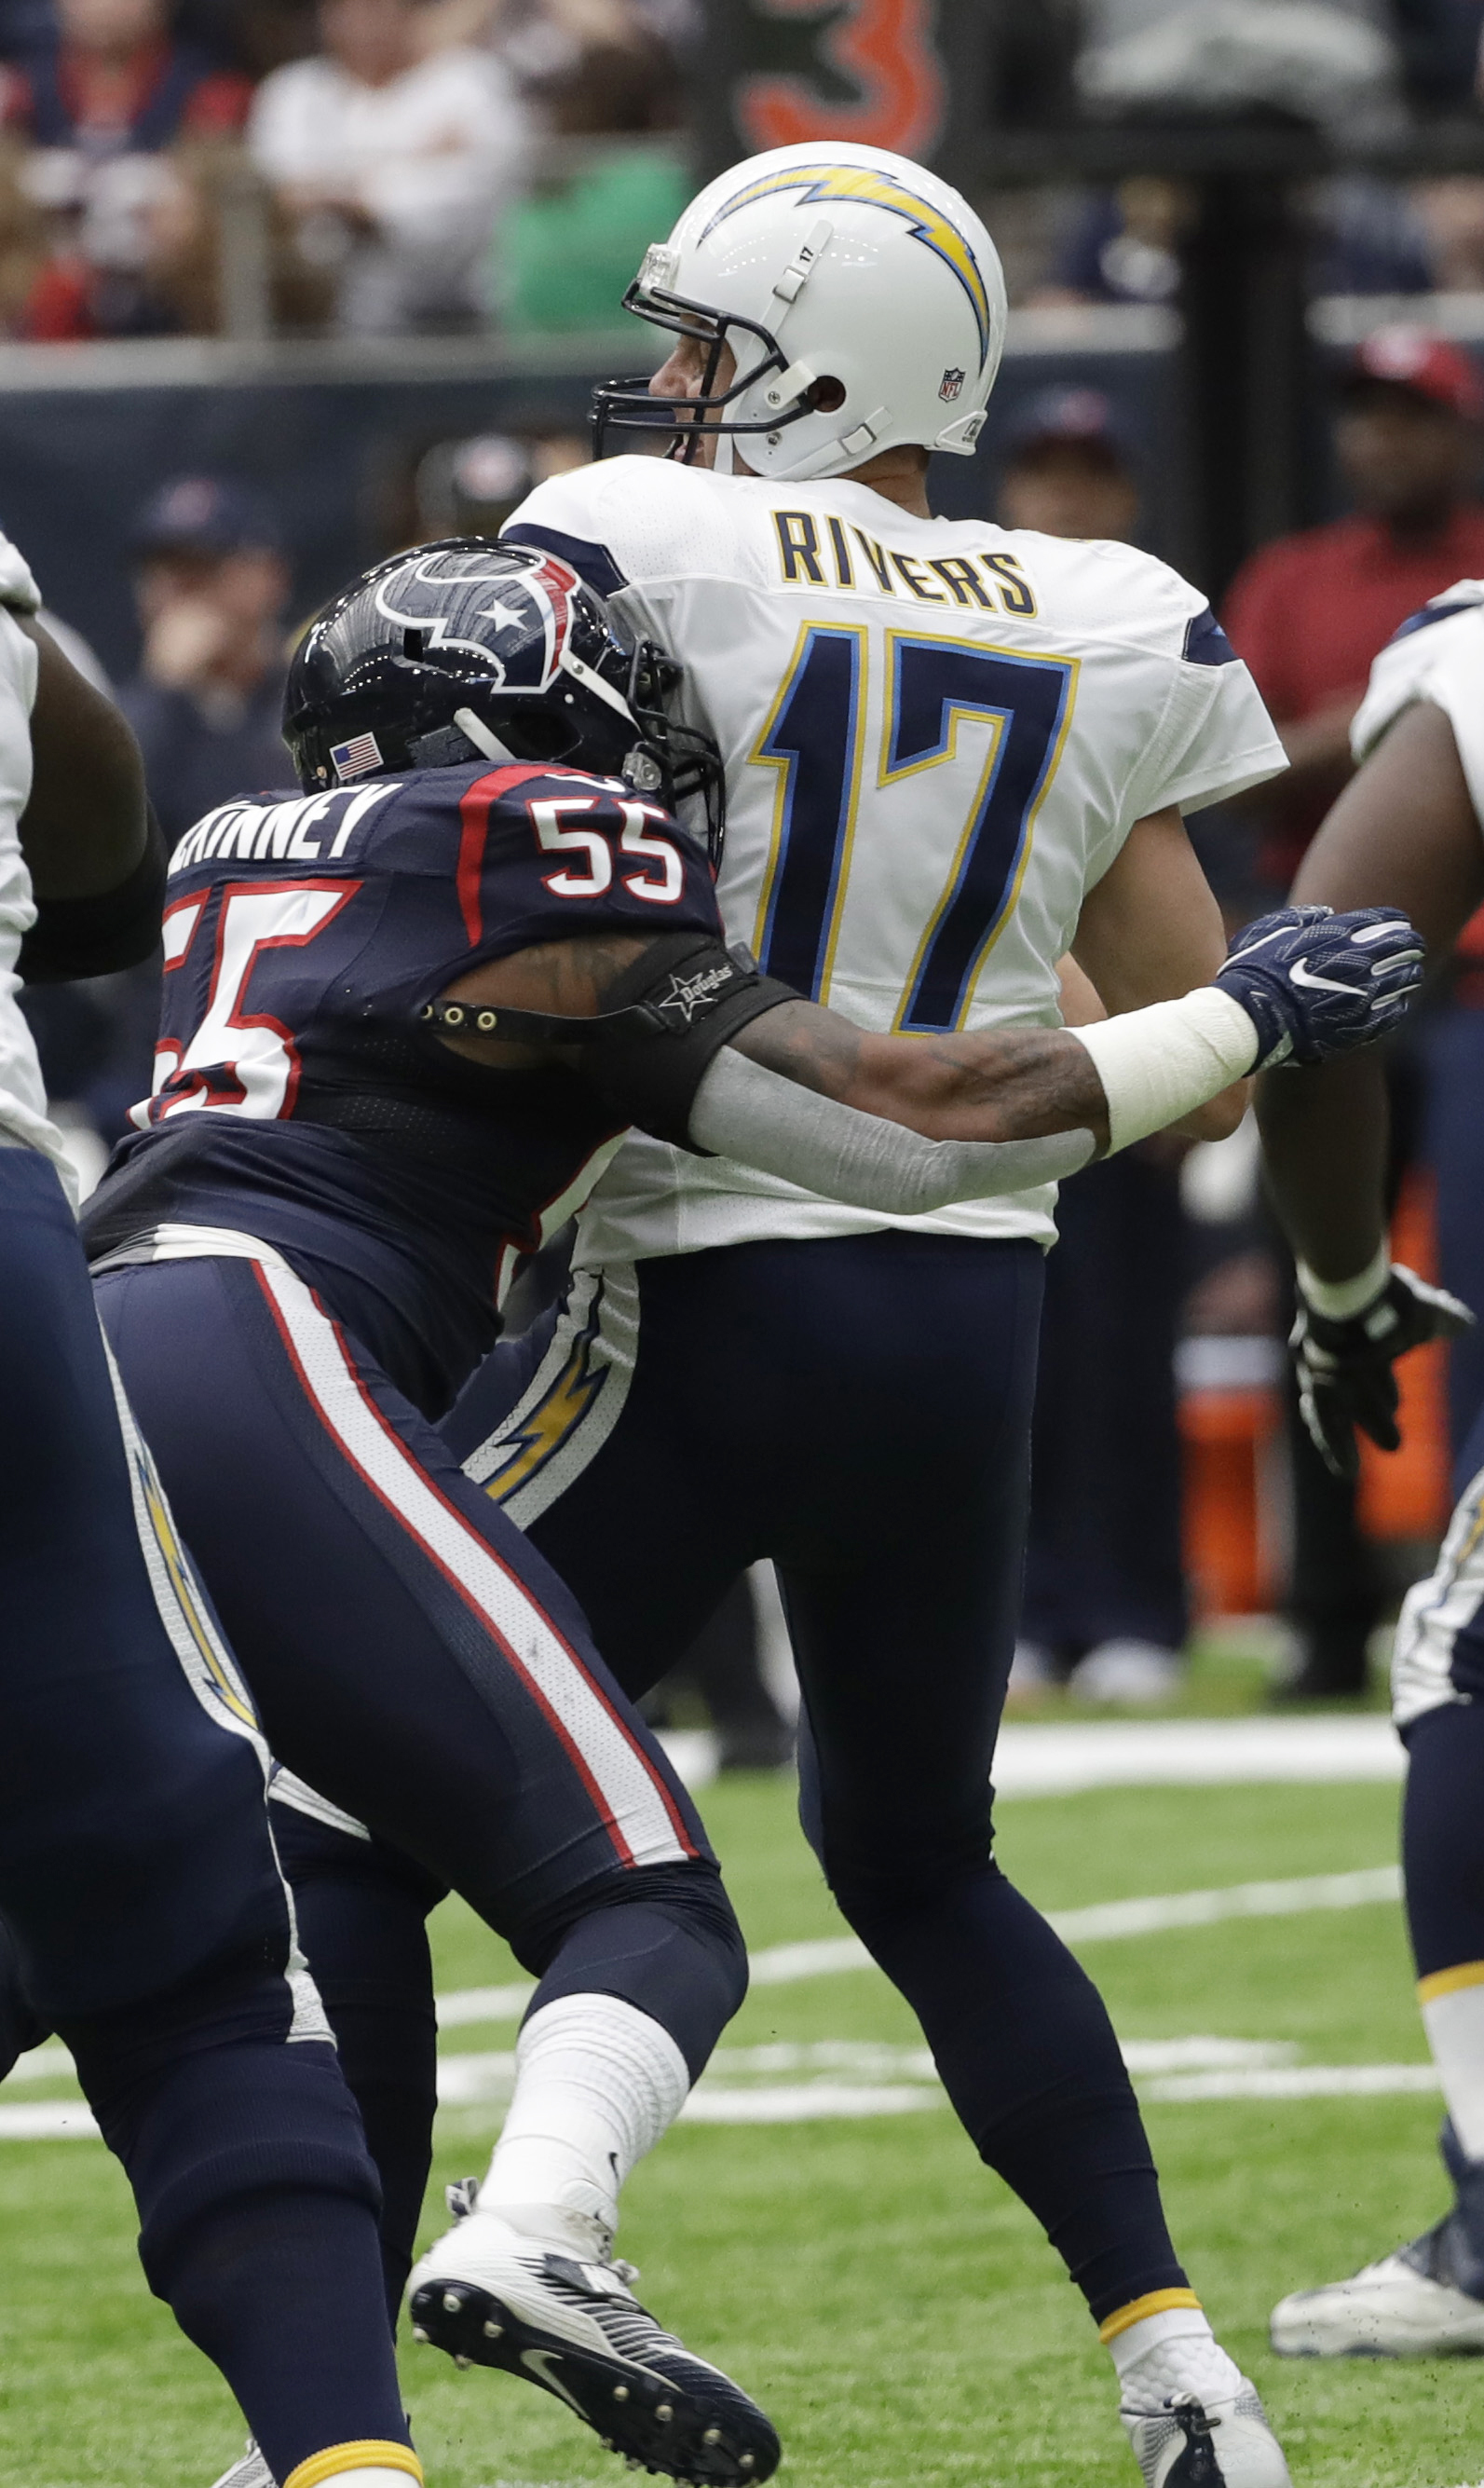 San Diego Chargers quarterback Philip Rivers is sacked by Houston Texans' Benardrick McKinney during the first half of an NFL football game Sunday, Nov. 27, 2016, in Houston. (AP Photo/David J. Phillip)